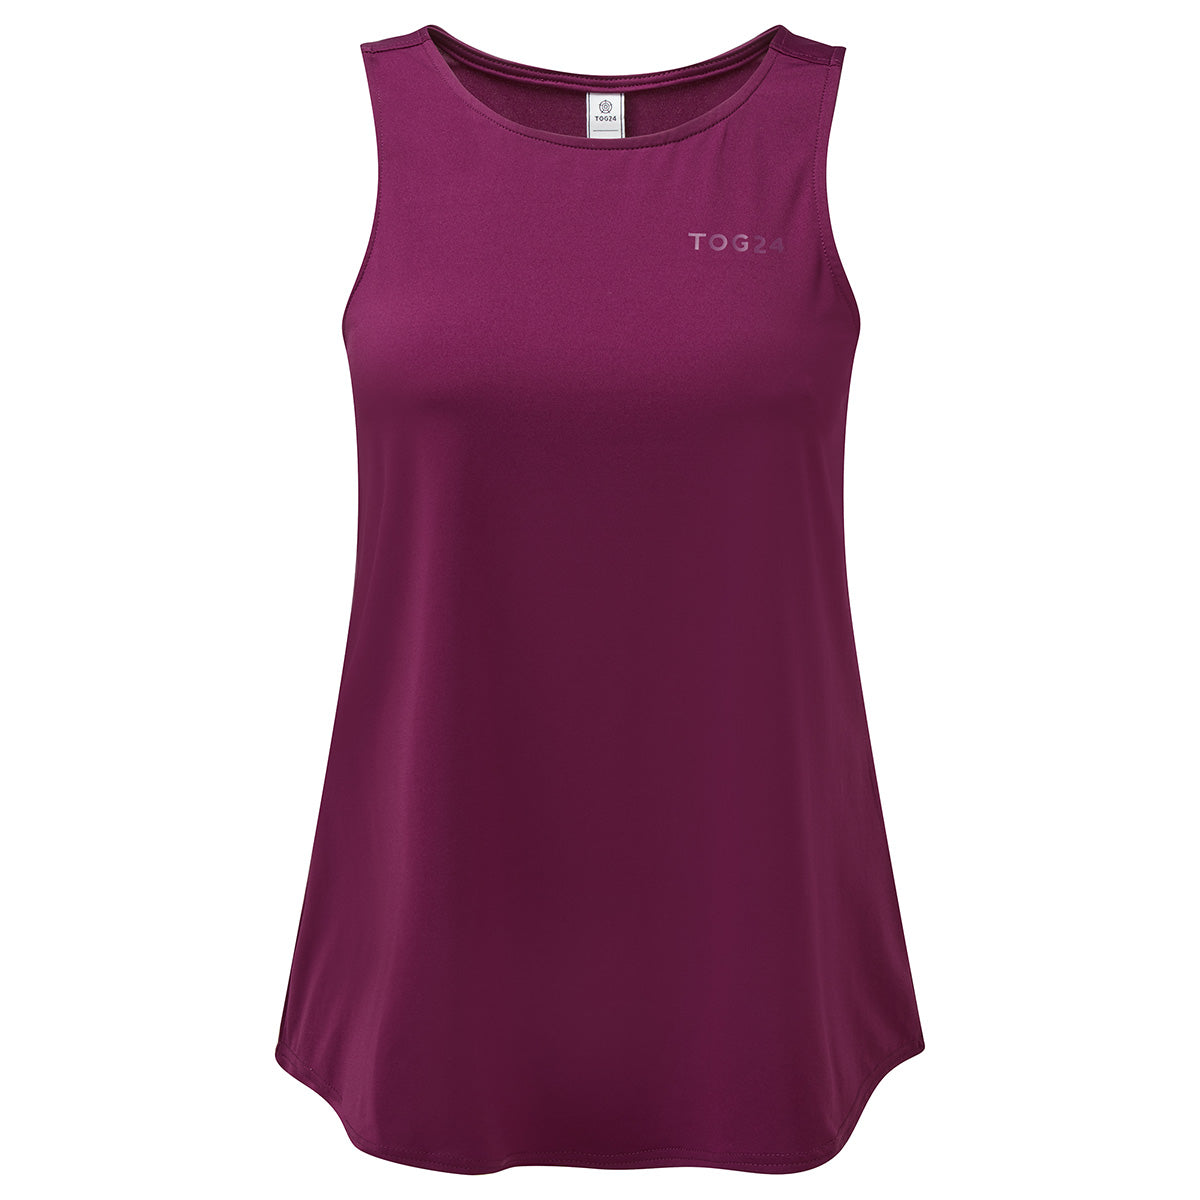 Flinn Womens Performance Vest - Mulberry